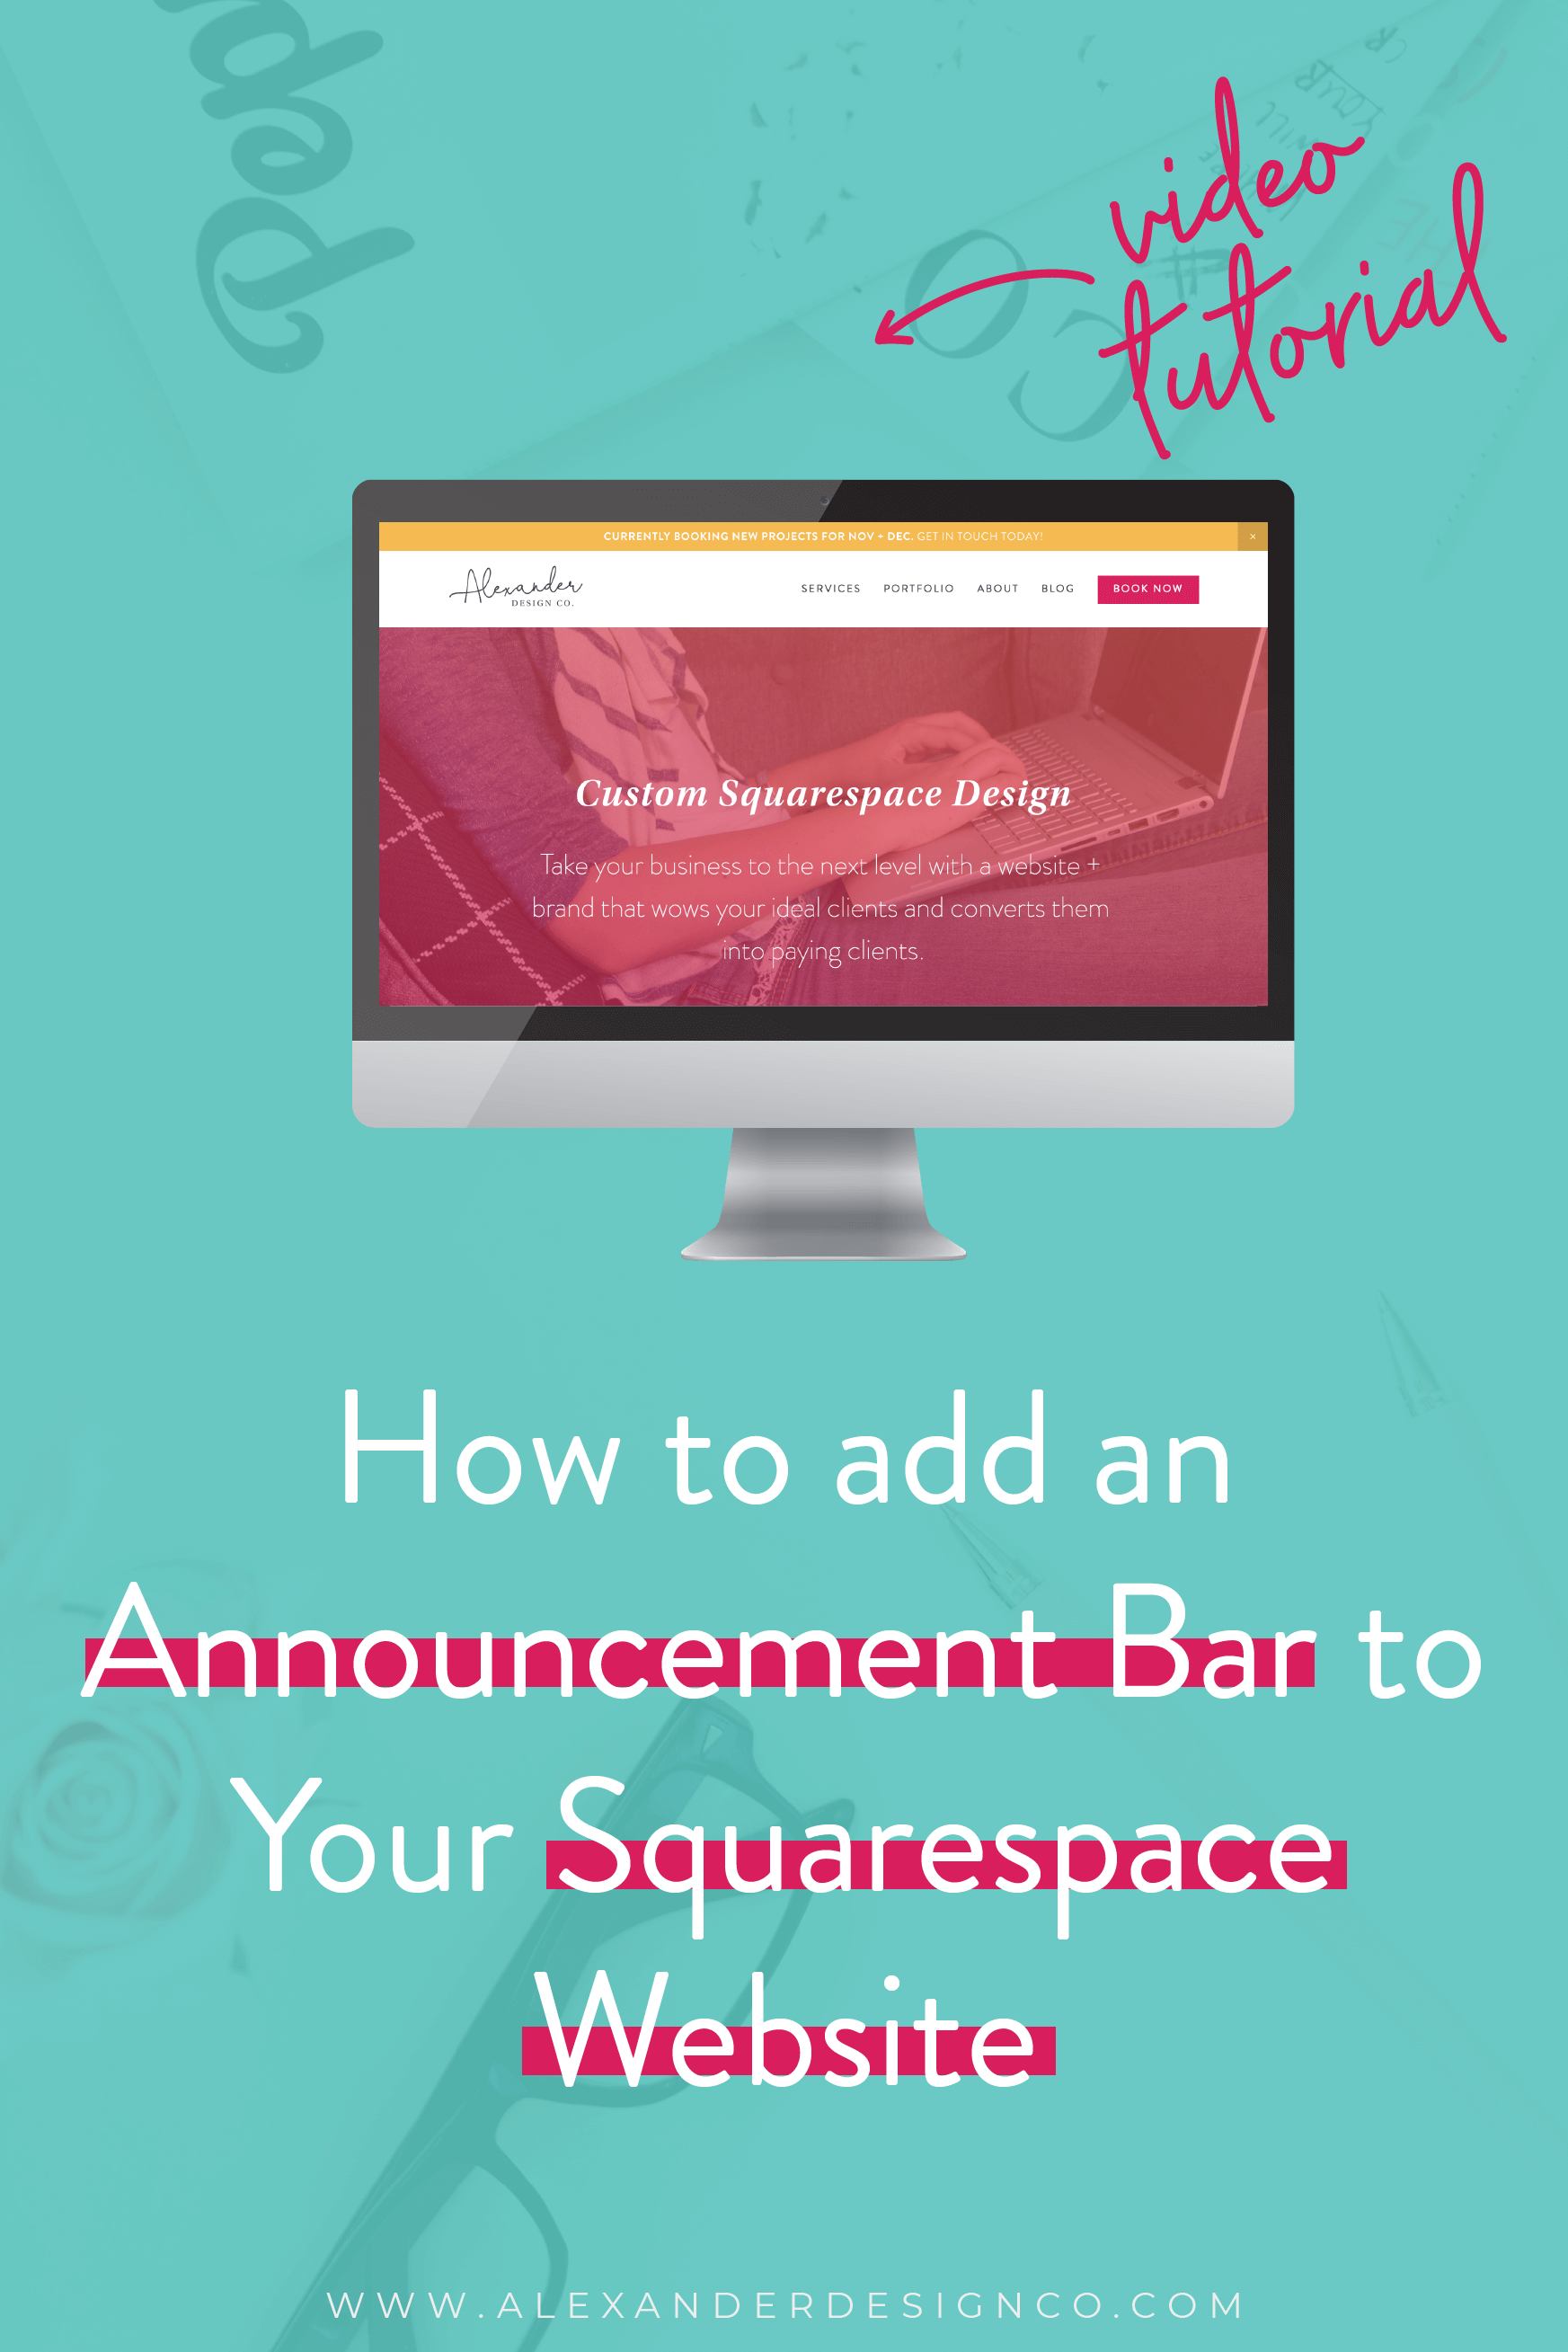 How to Add an Announcement Bar to Your Squarespace Website